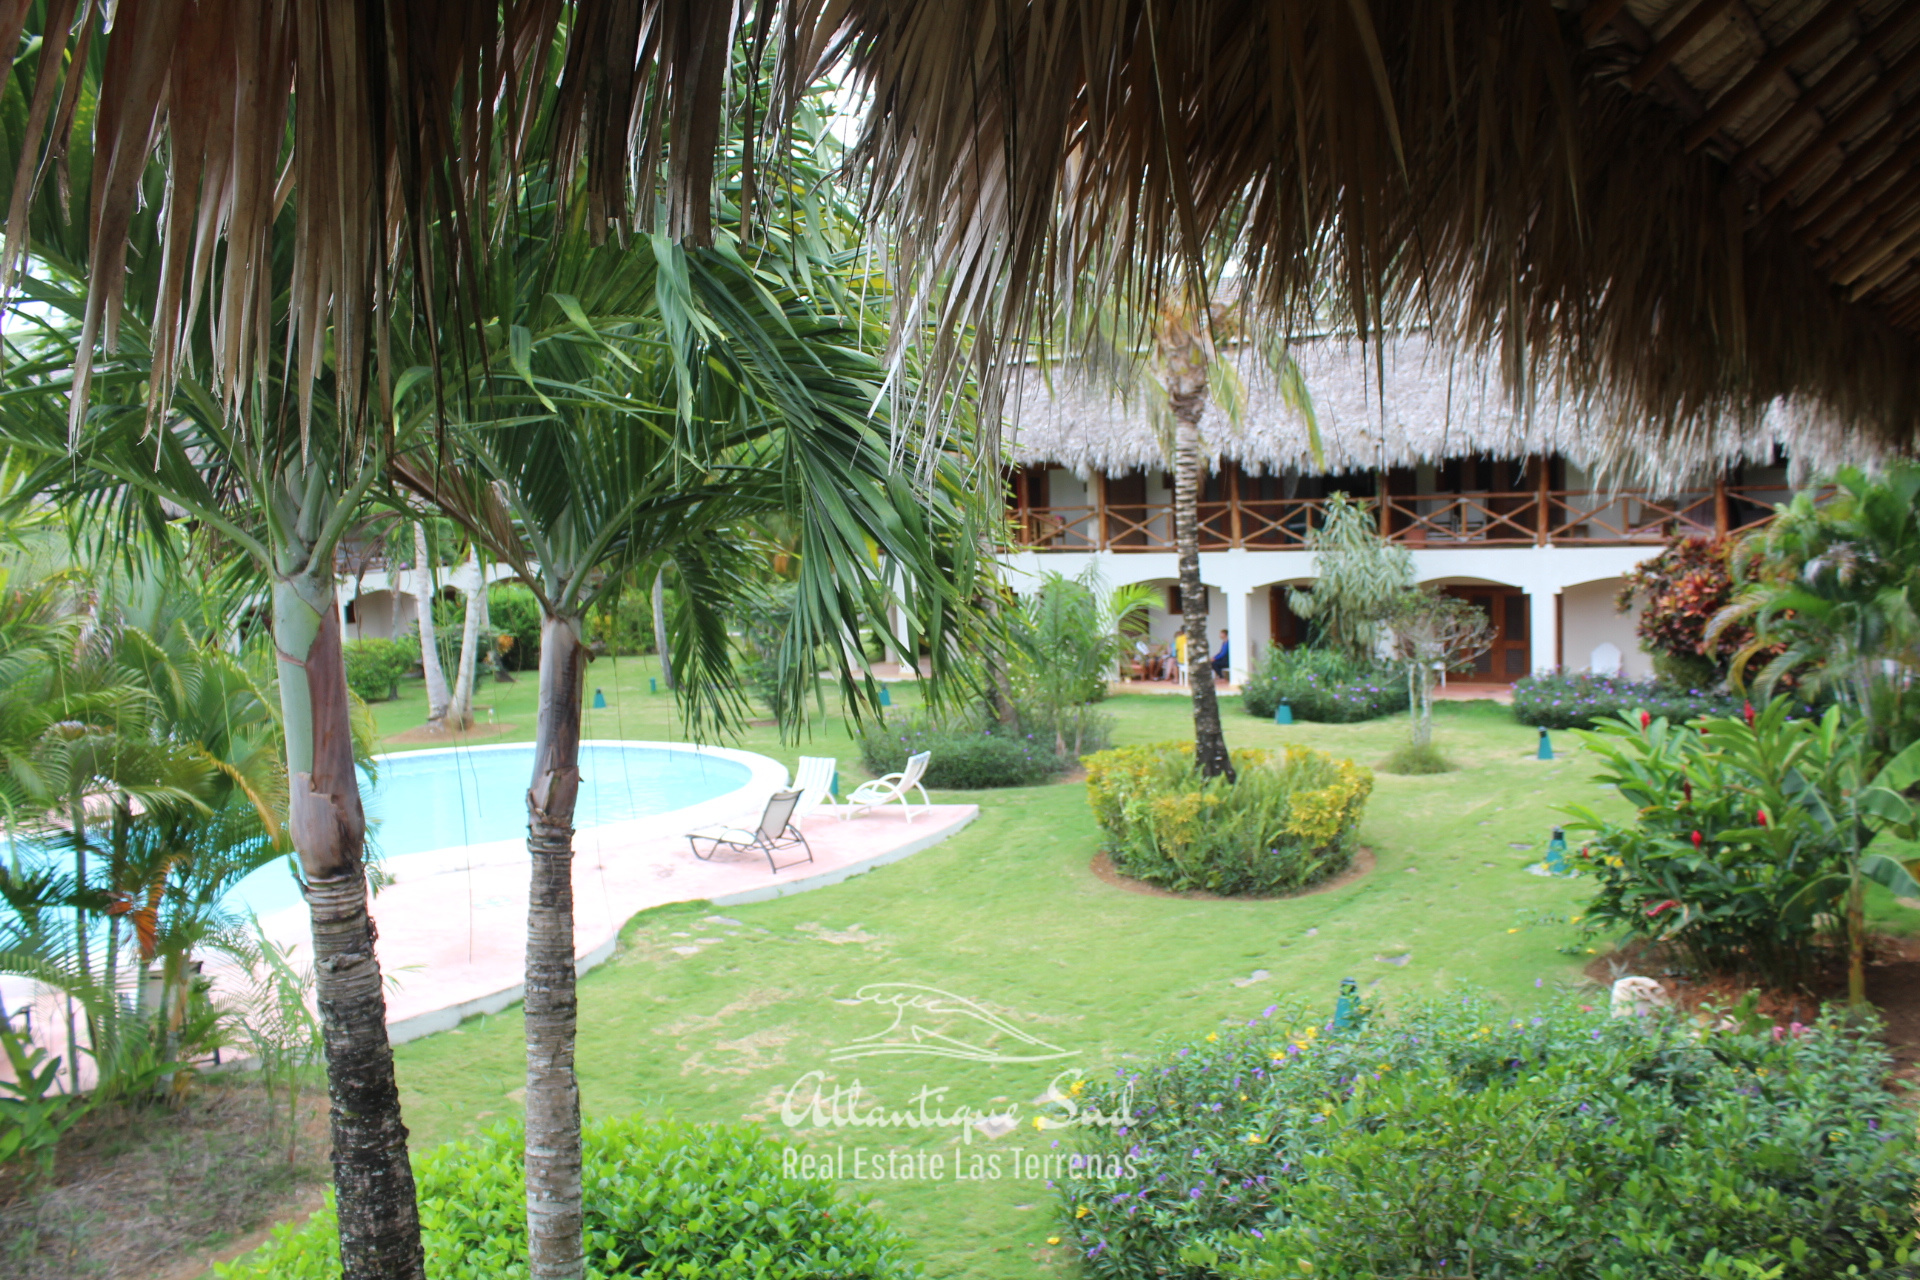 For-sale-Apartment-in-beachfront-community-with-mezzanine-Las-Terrenas_4813 (1).JPG